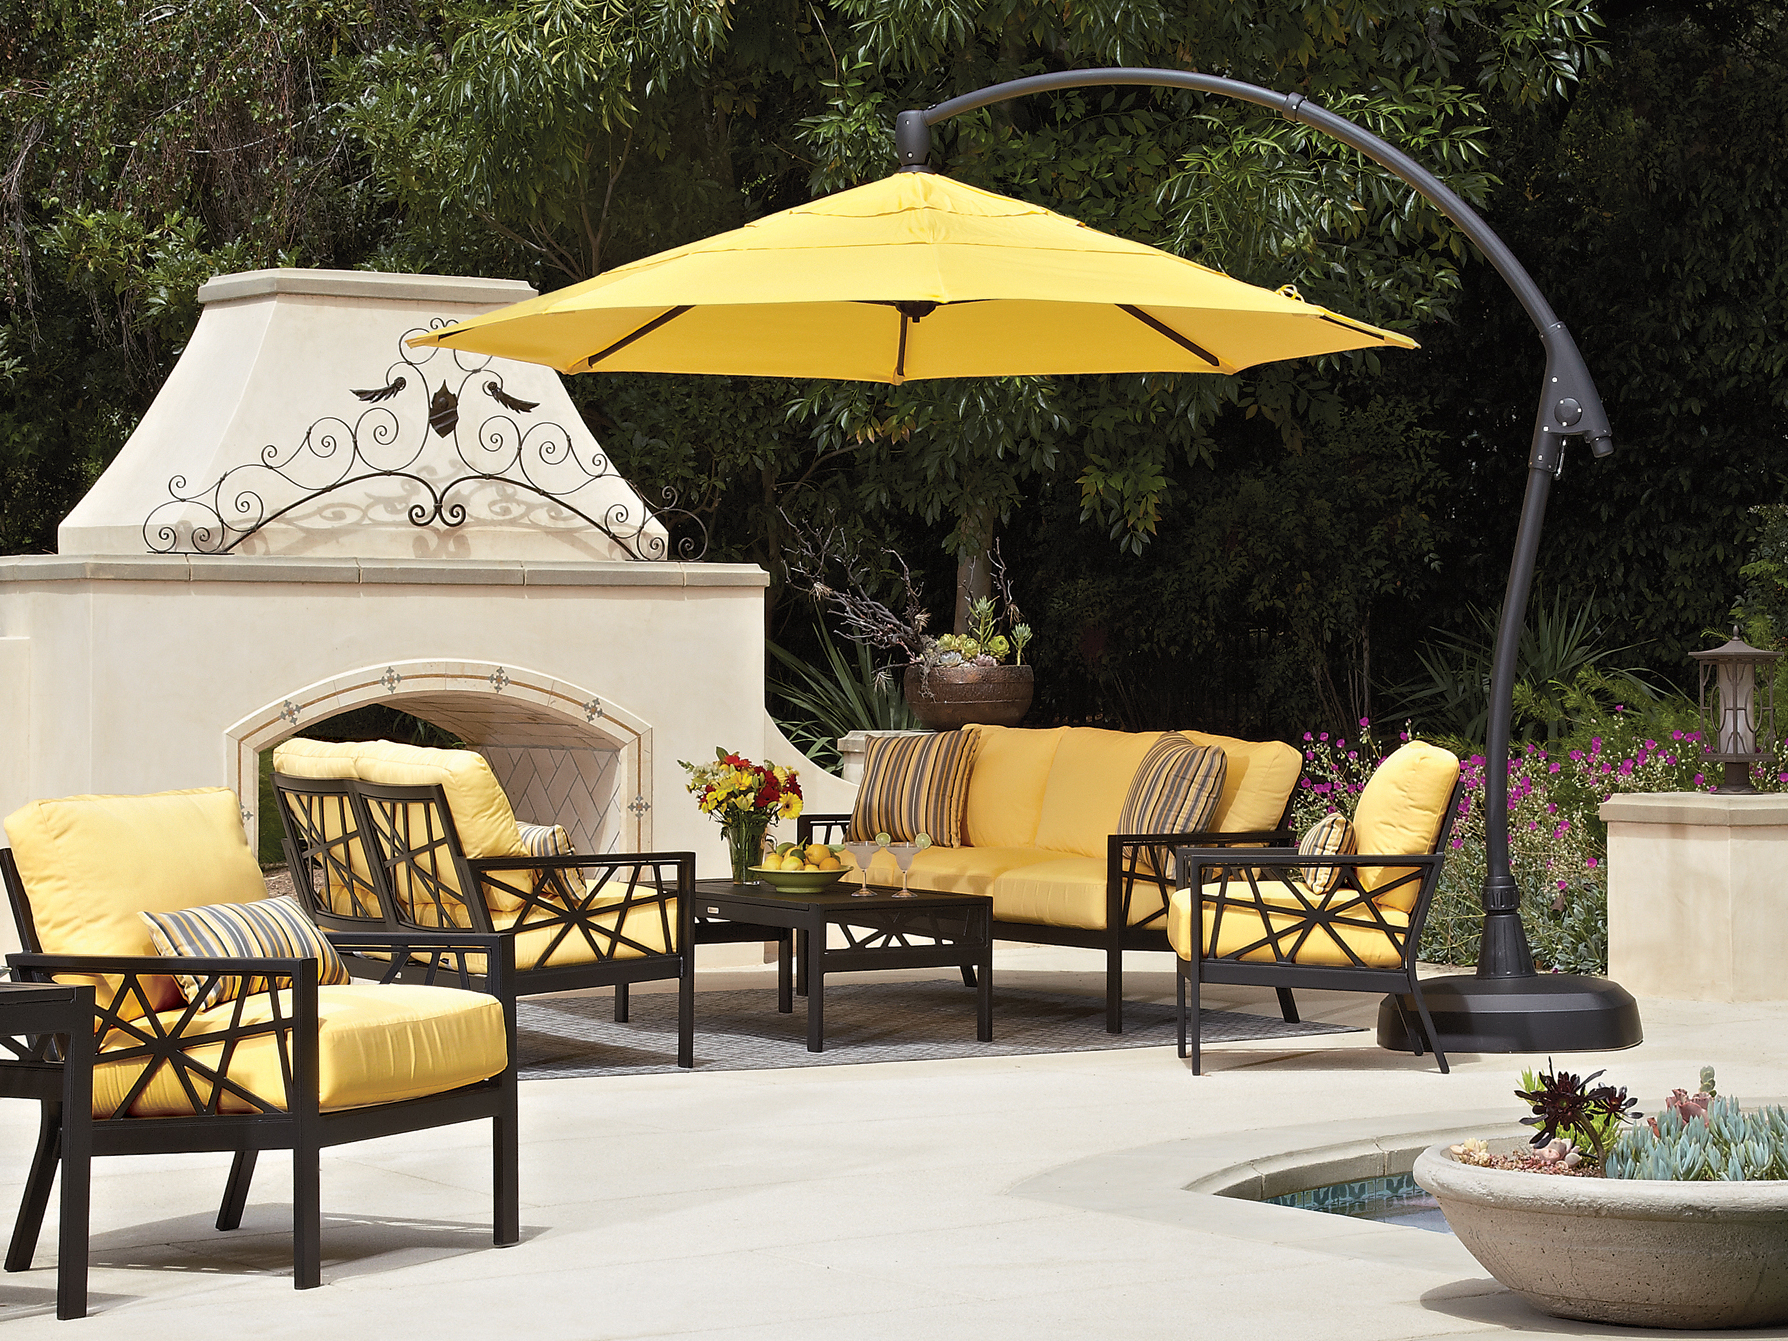 Discount Patio Umbrellas also South Shore 384609X furthermore Vatican By Dominique Chivot Assouline moreover English Style Estate Traditional Living Room Los Angeles besides Patio Lounge Chairs Canada. on garden treasures bar chairs